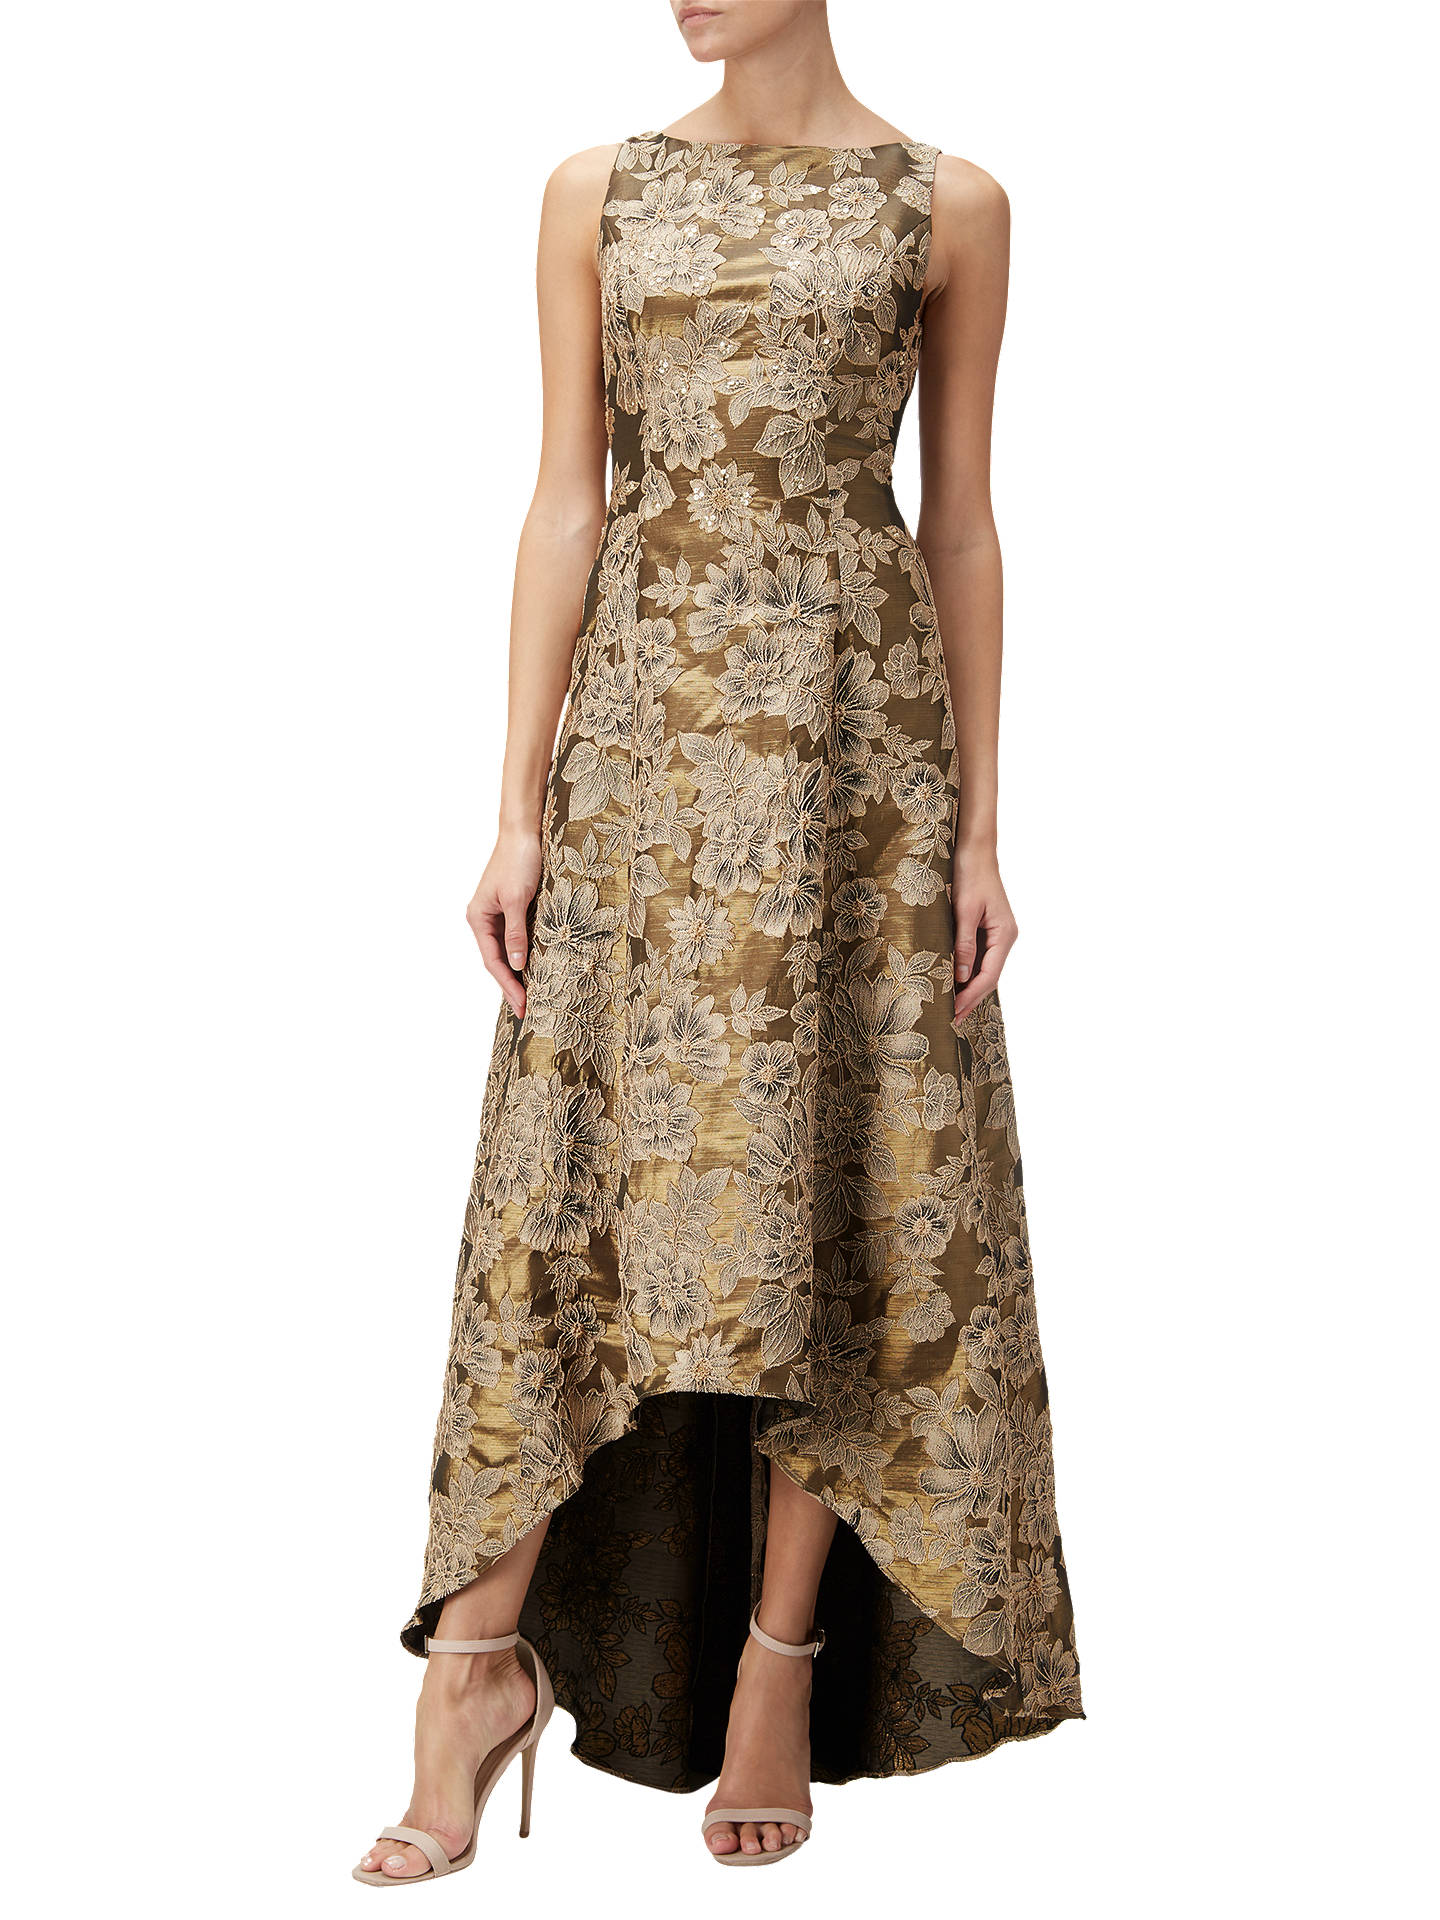 a472d00b66a44 Buy Adrianna Papell High-Low Floral Jacquard Ball Gown